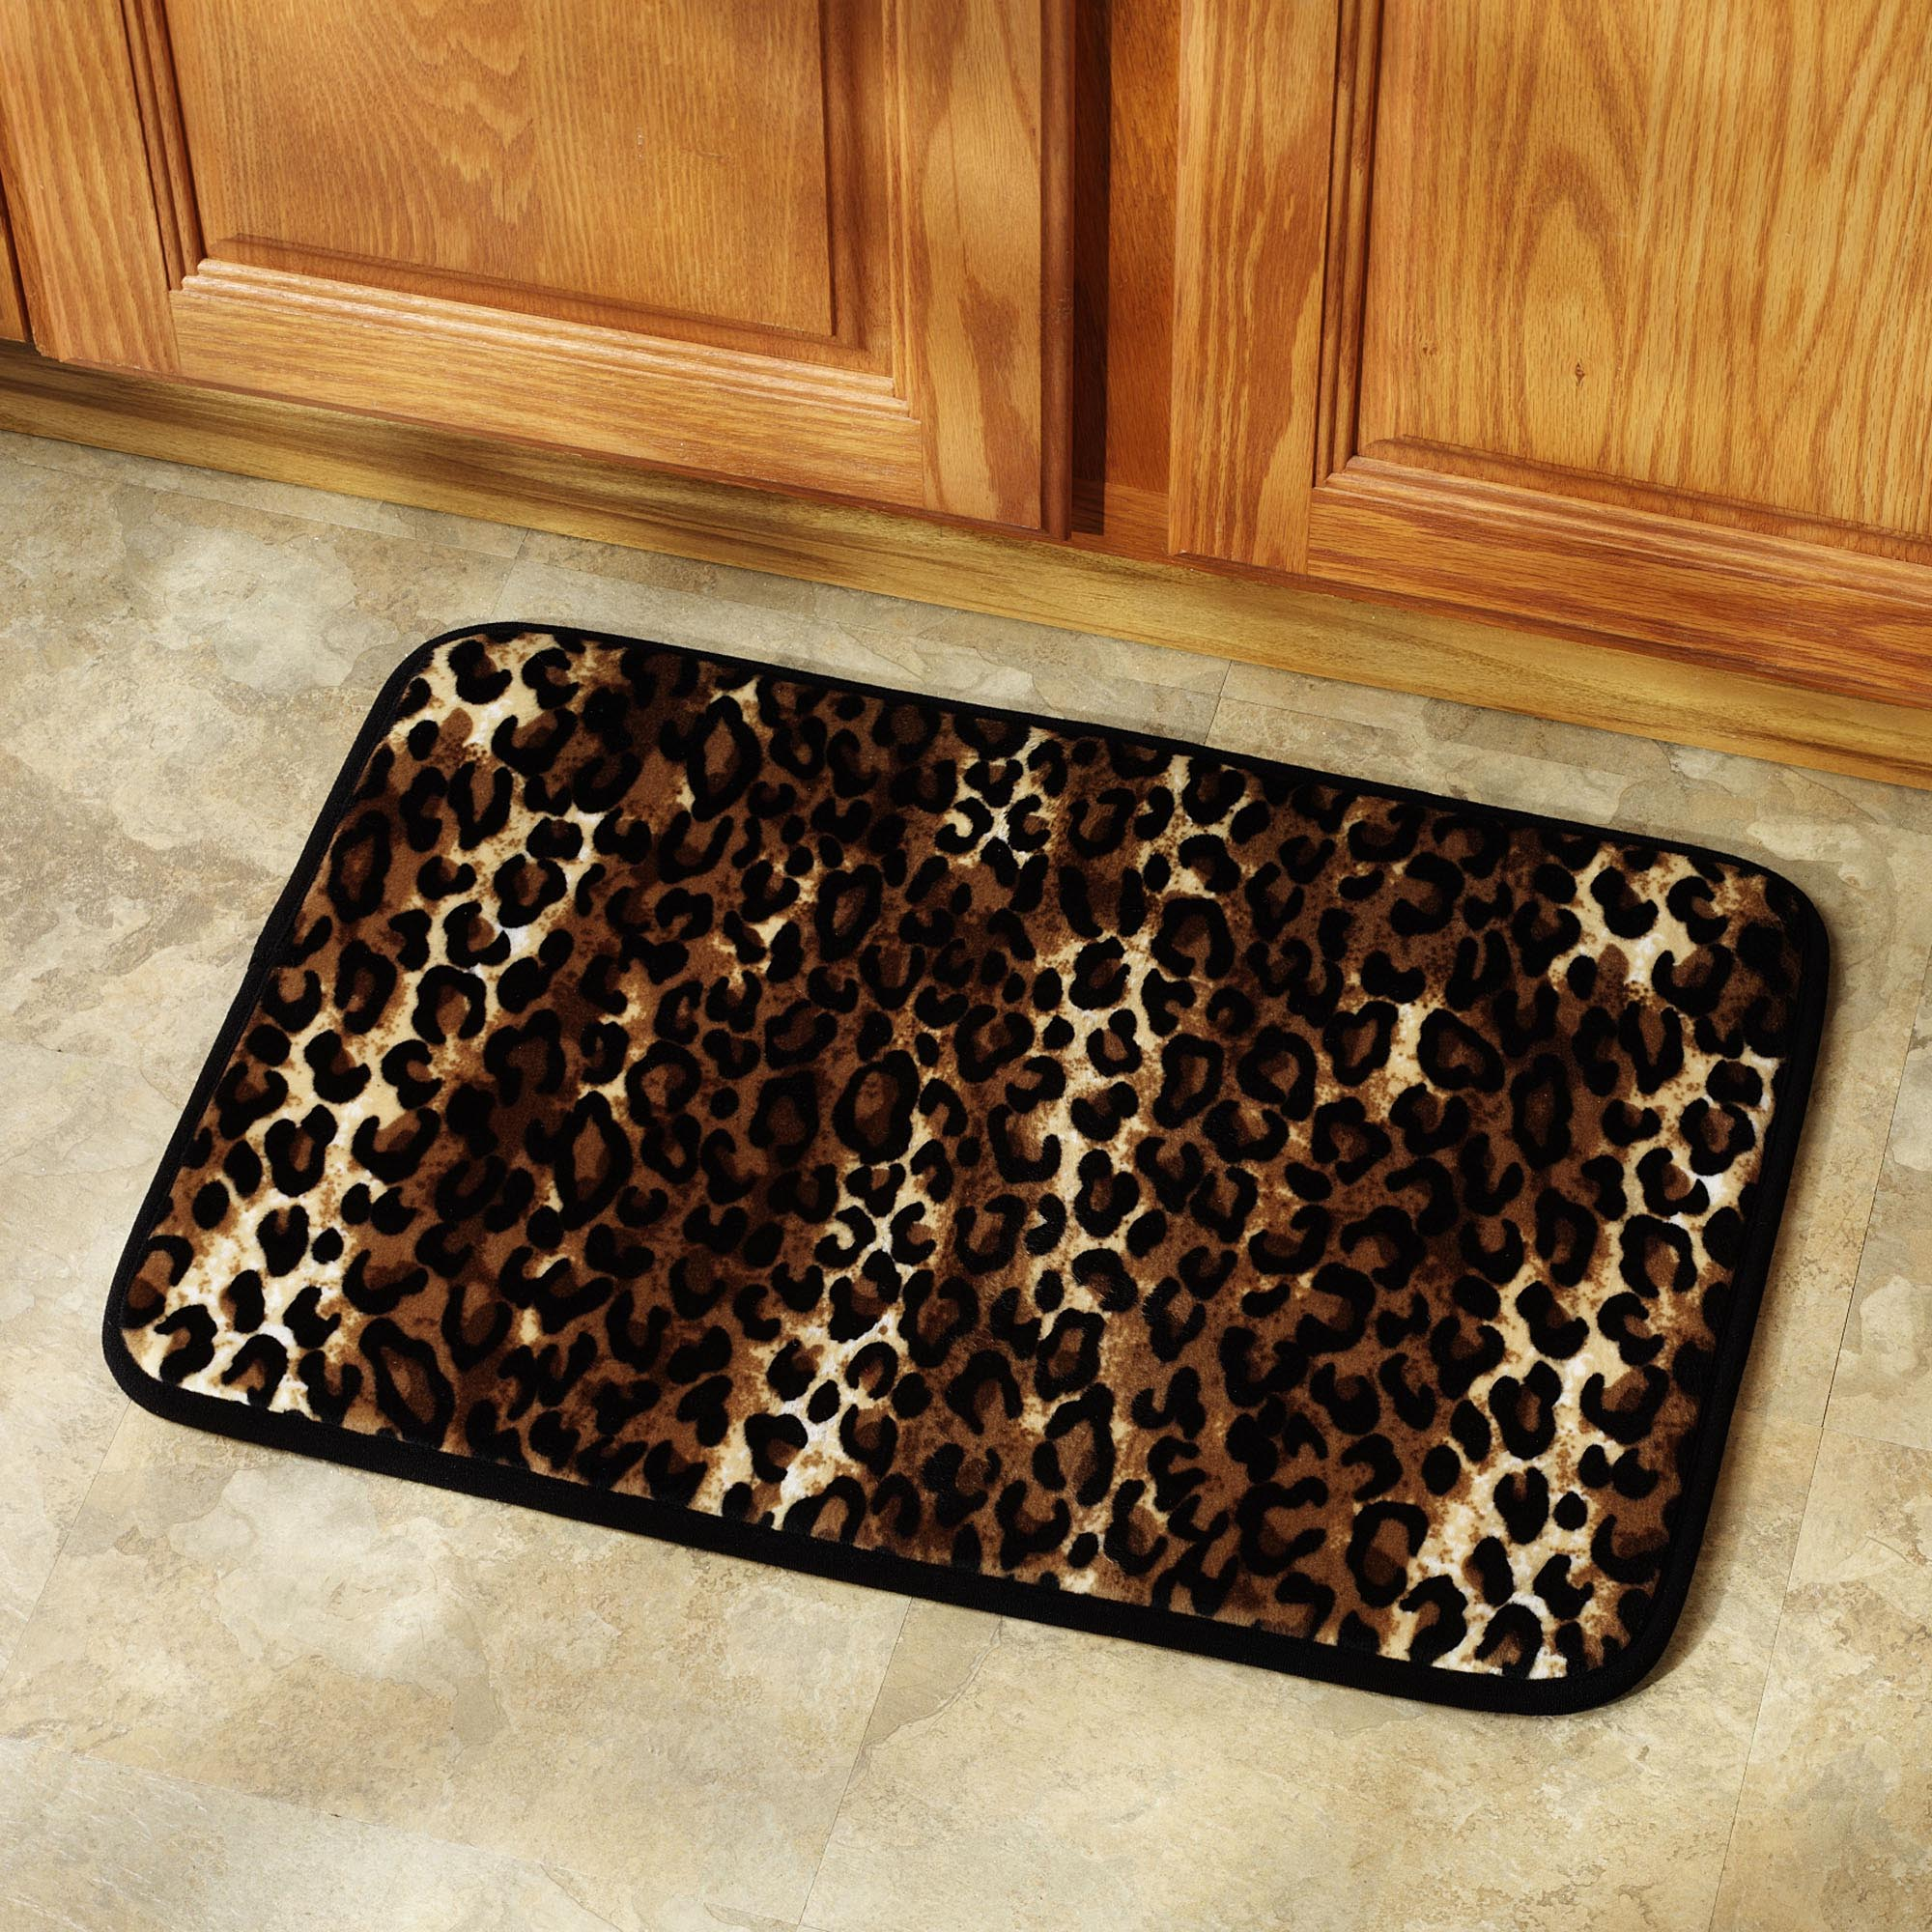 Leopard Print Rug In Your Home Best